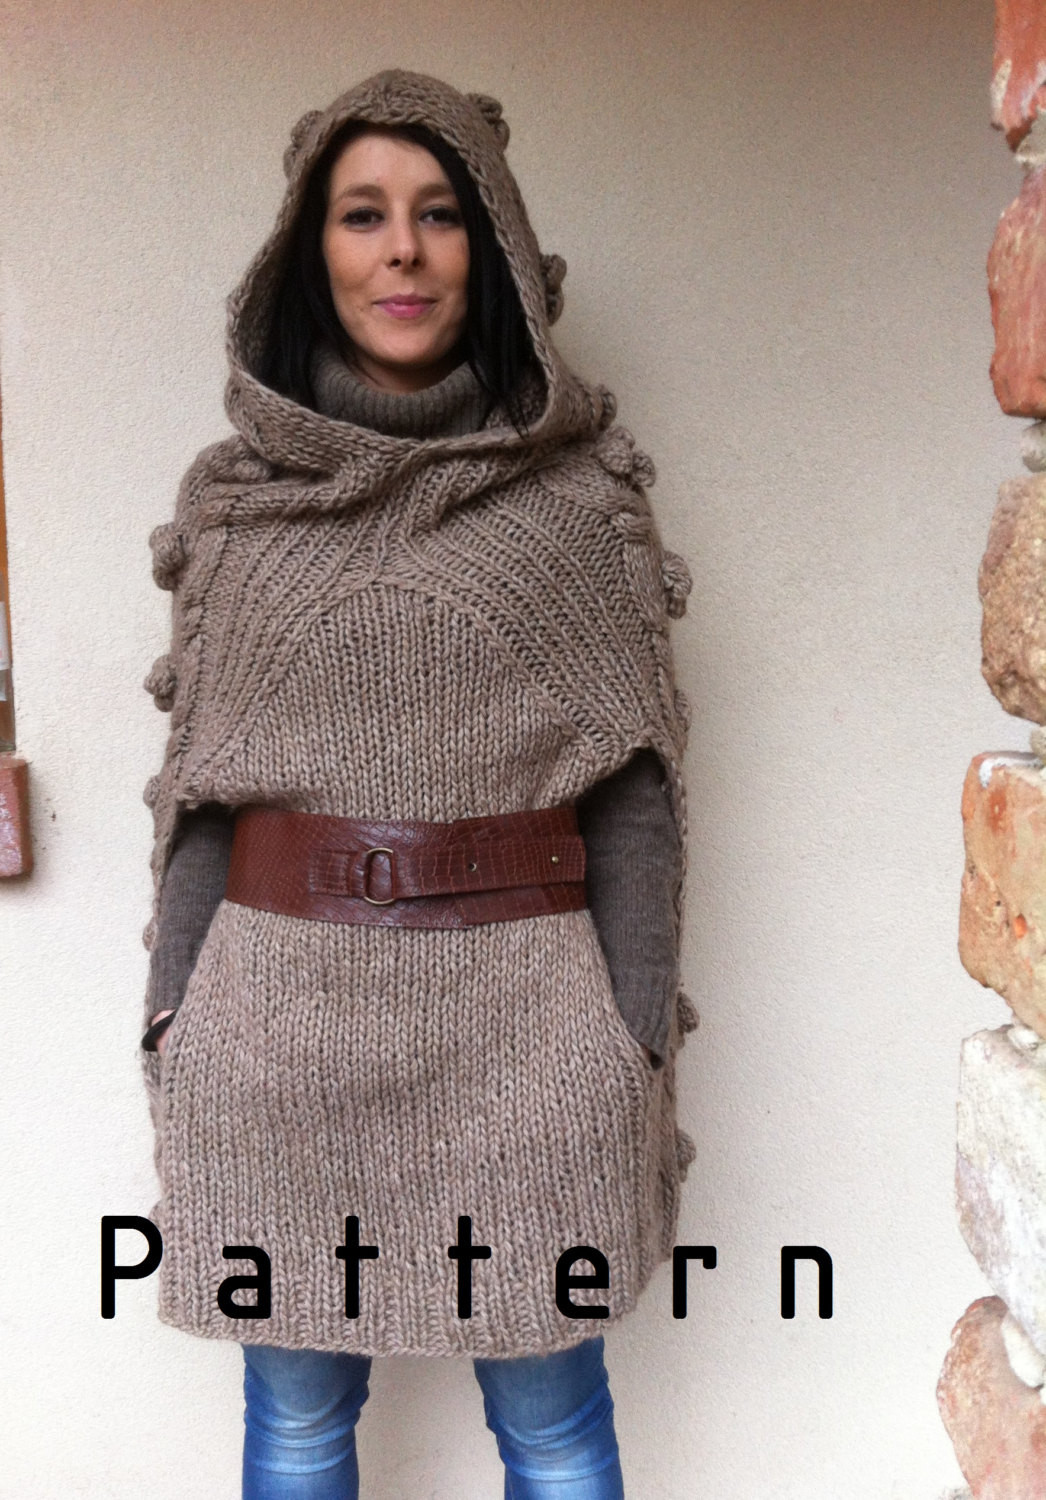 Poncho Knitting Patterns Beautiful Classic and Funny Poncho Knitting Pattern Supply Woman Of Poncho Knitting Patterns Fresh Click for Close Up Anything and Everything